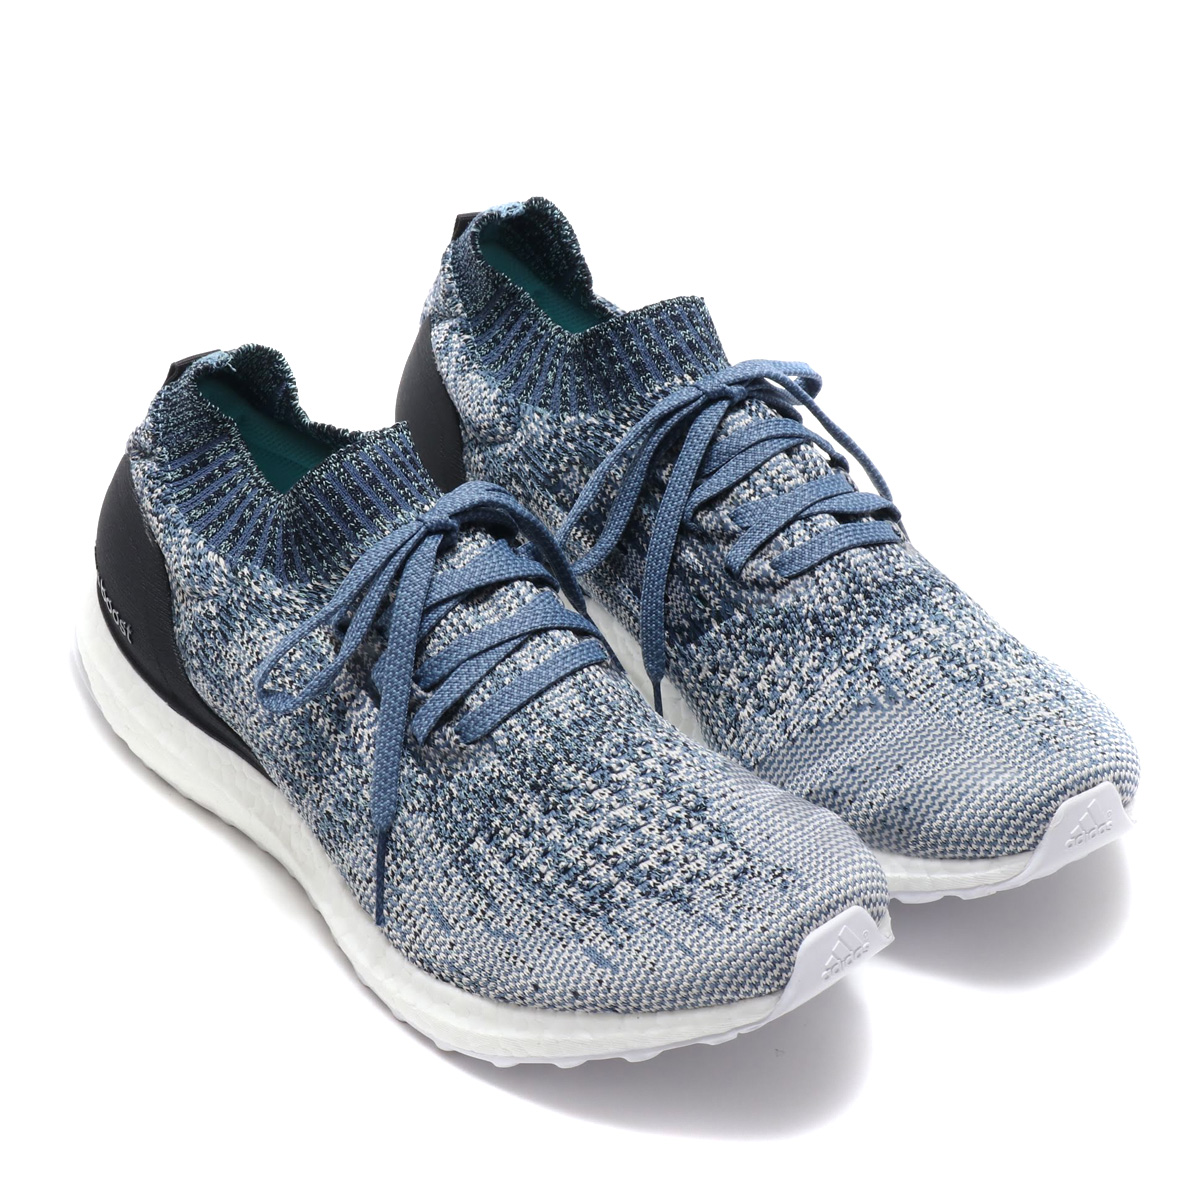 8e96b385cd2ae The shoes which got a hint from the idea of the runner who cut the cage of  shoes on hand with scissors